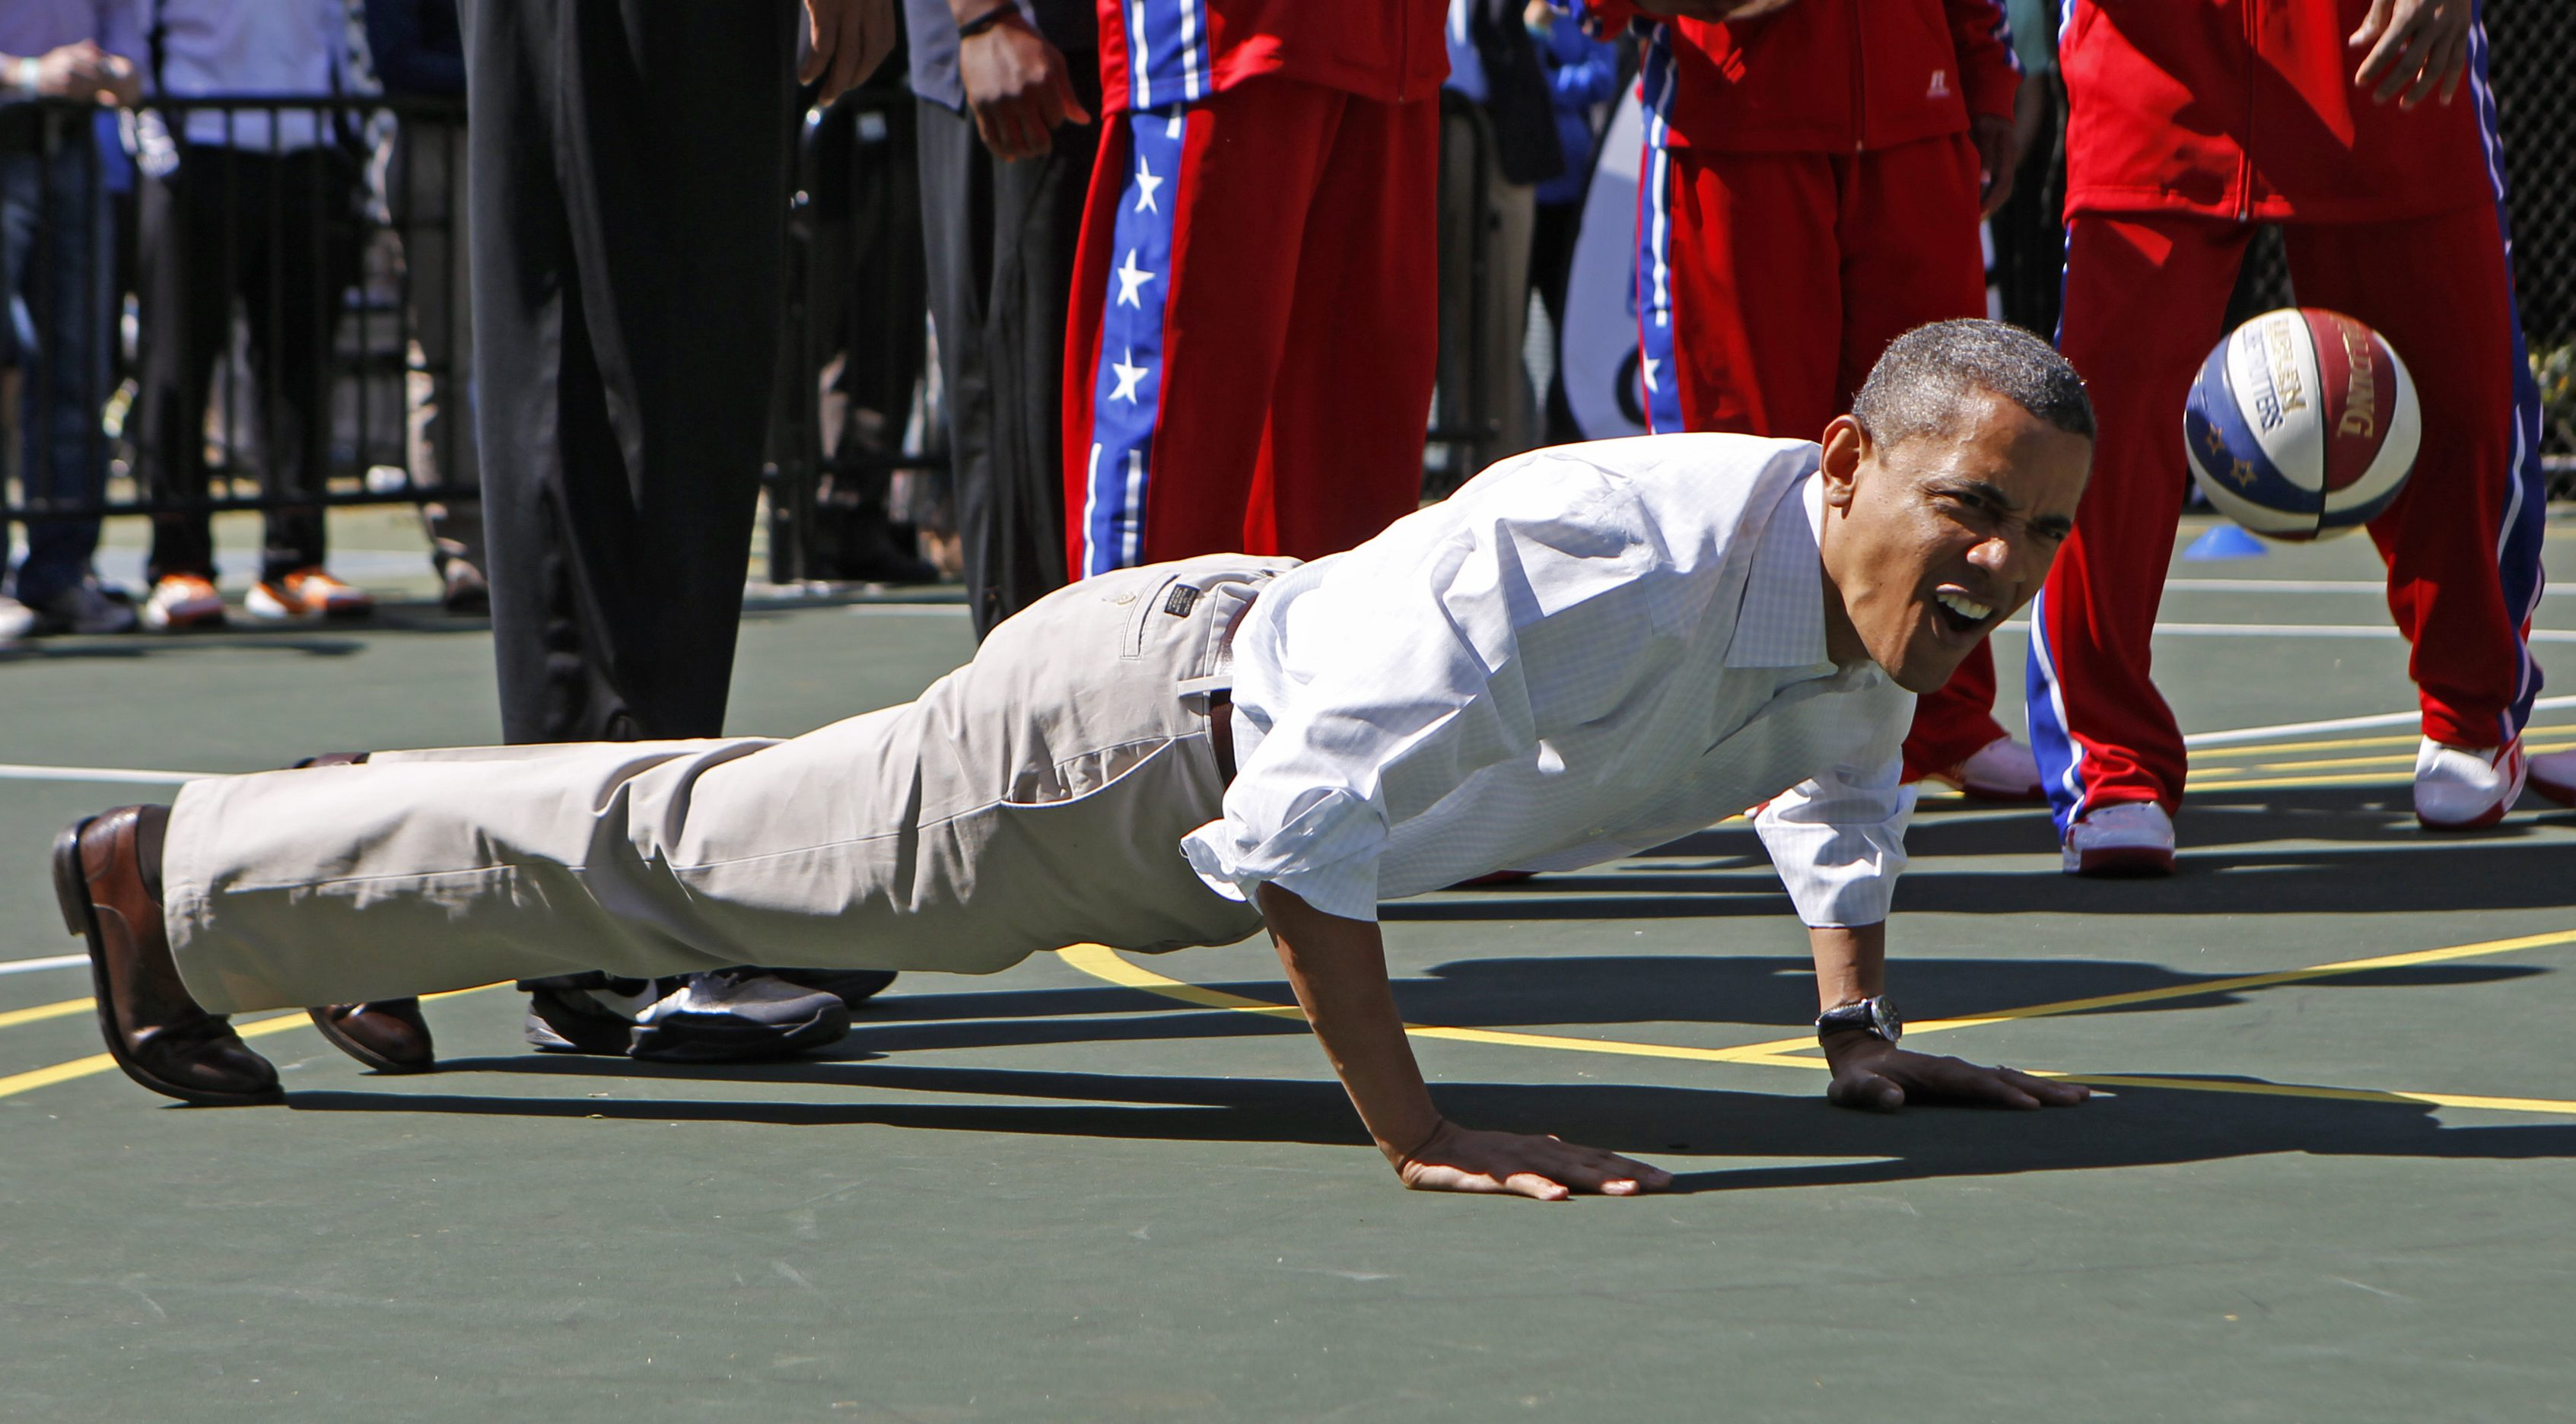 President Obama does push-ups at the Easter Egg Roll in Washington